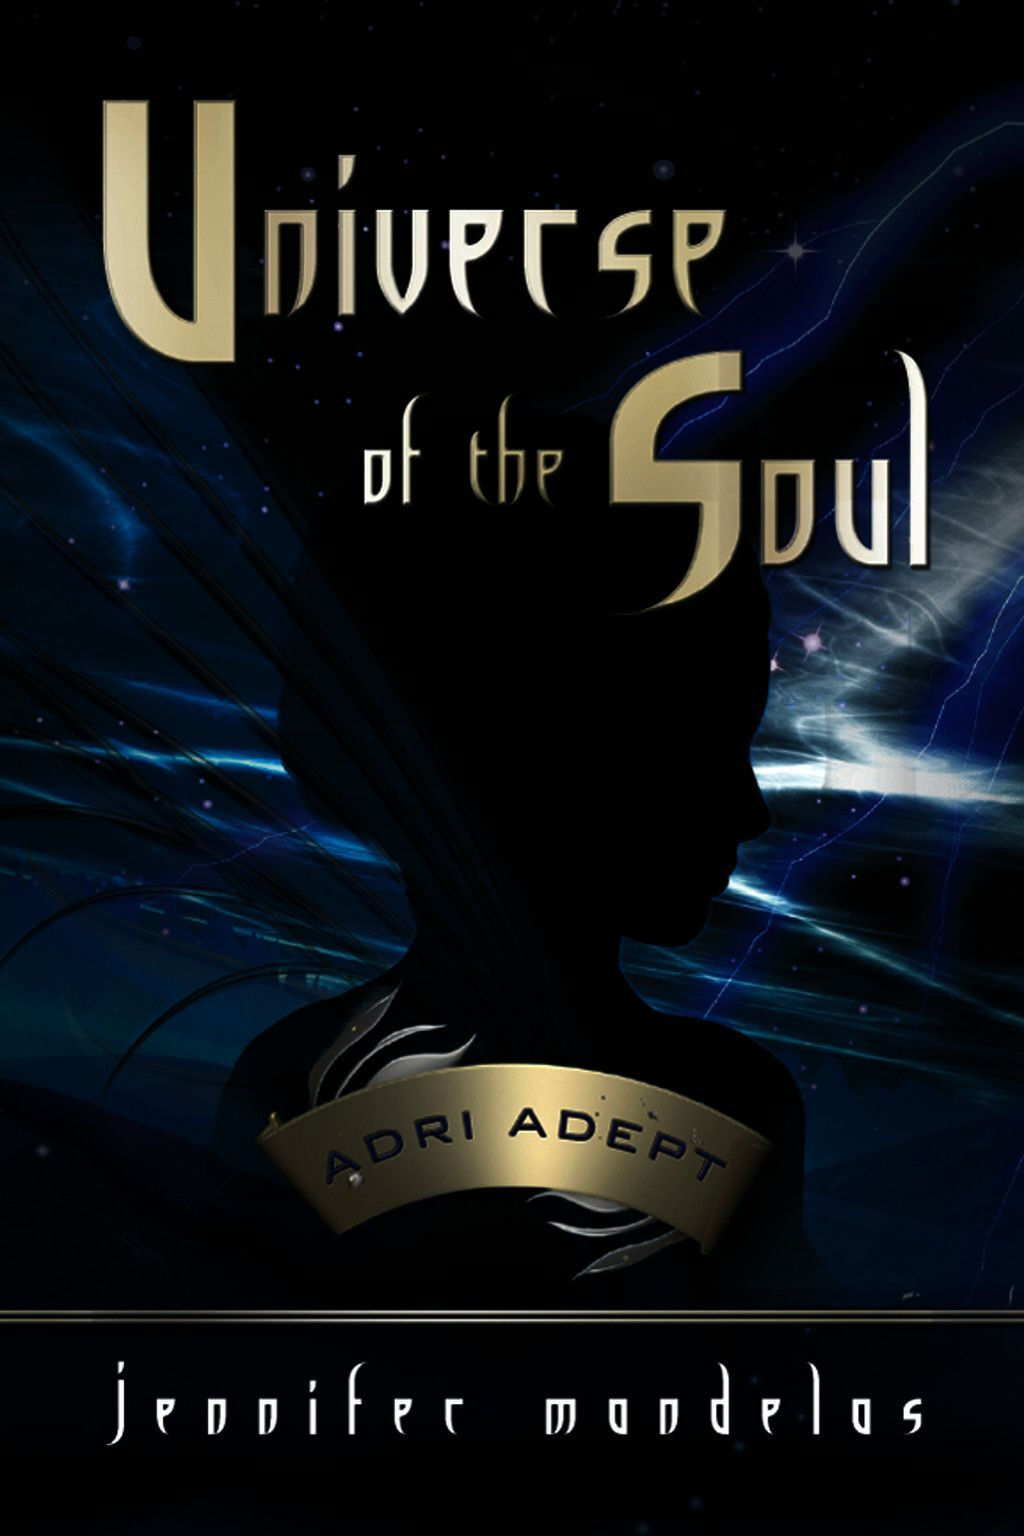 Universe Of The Soul~Adri Adept